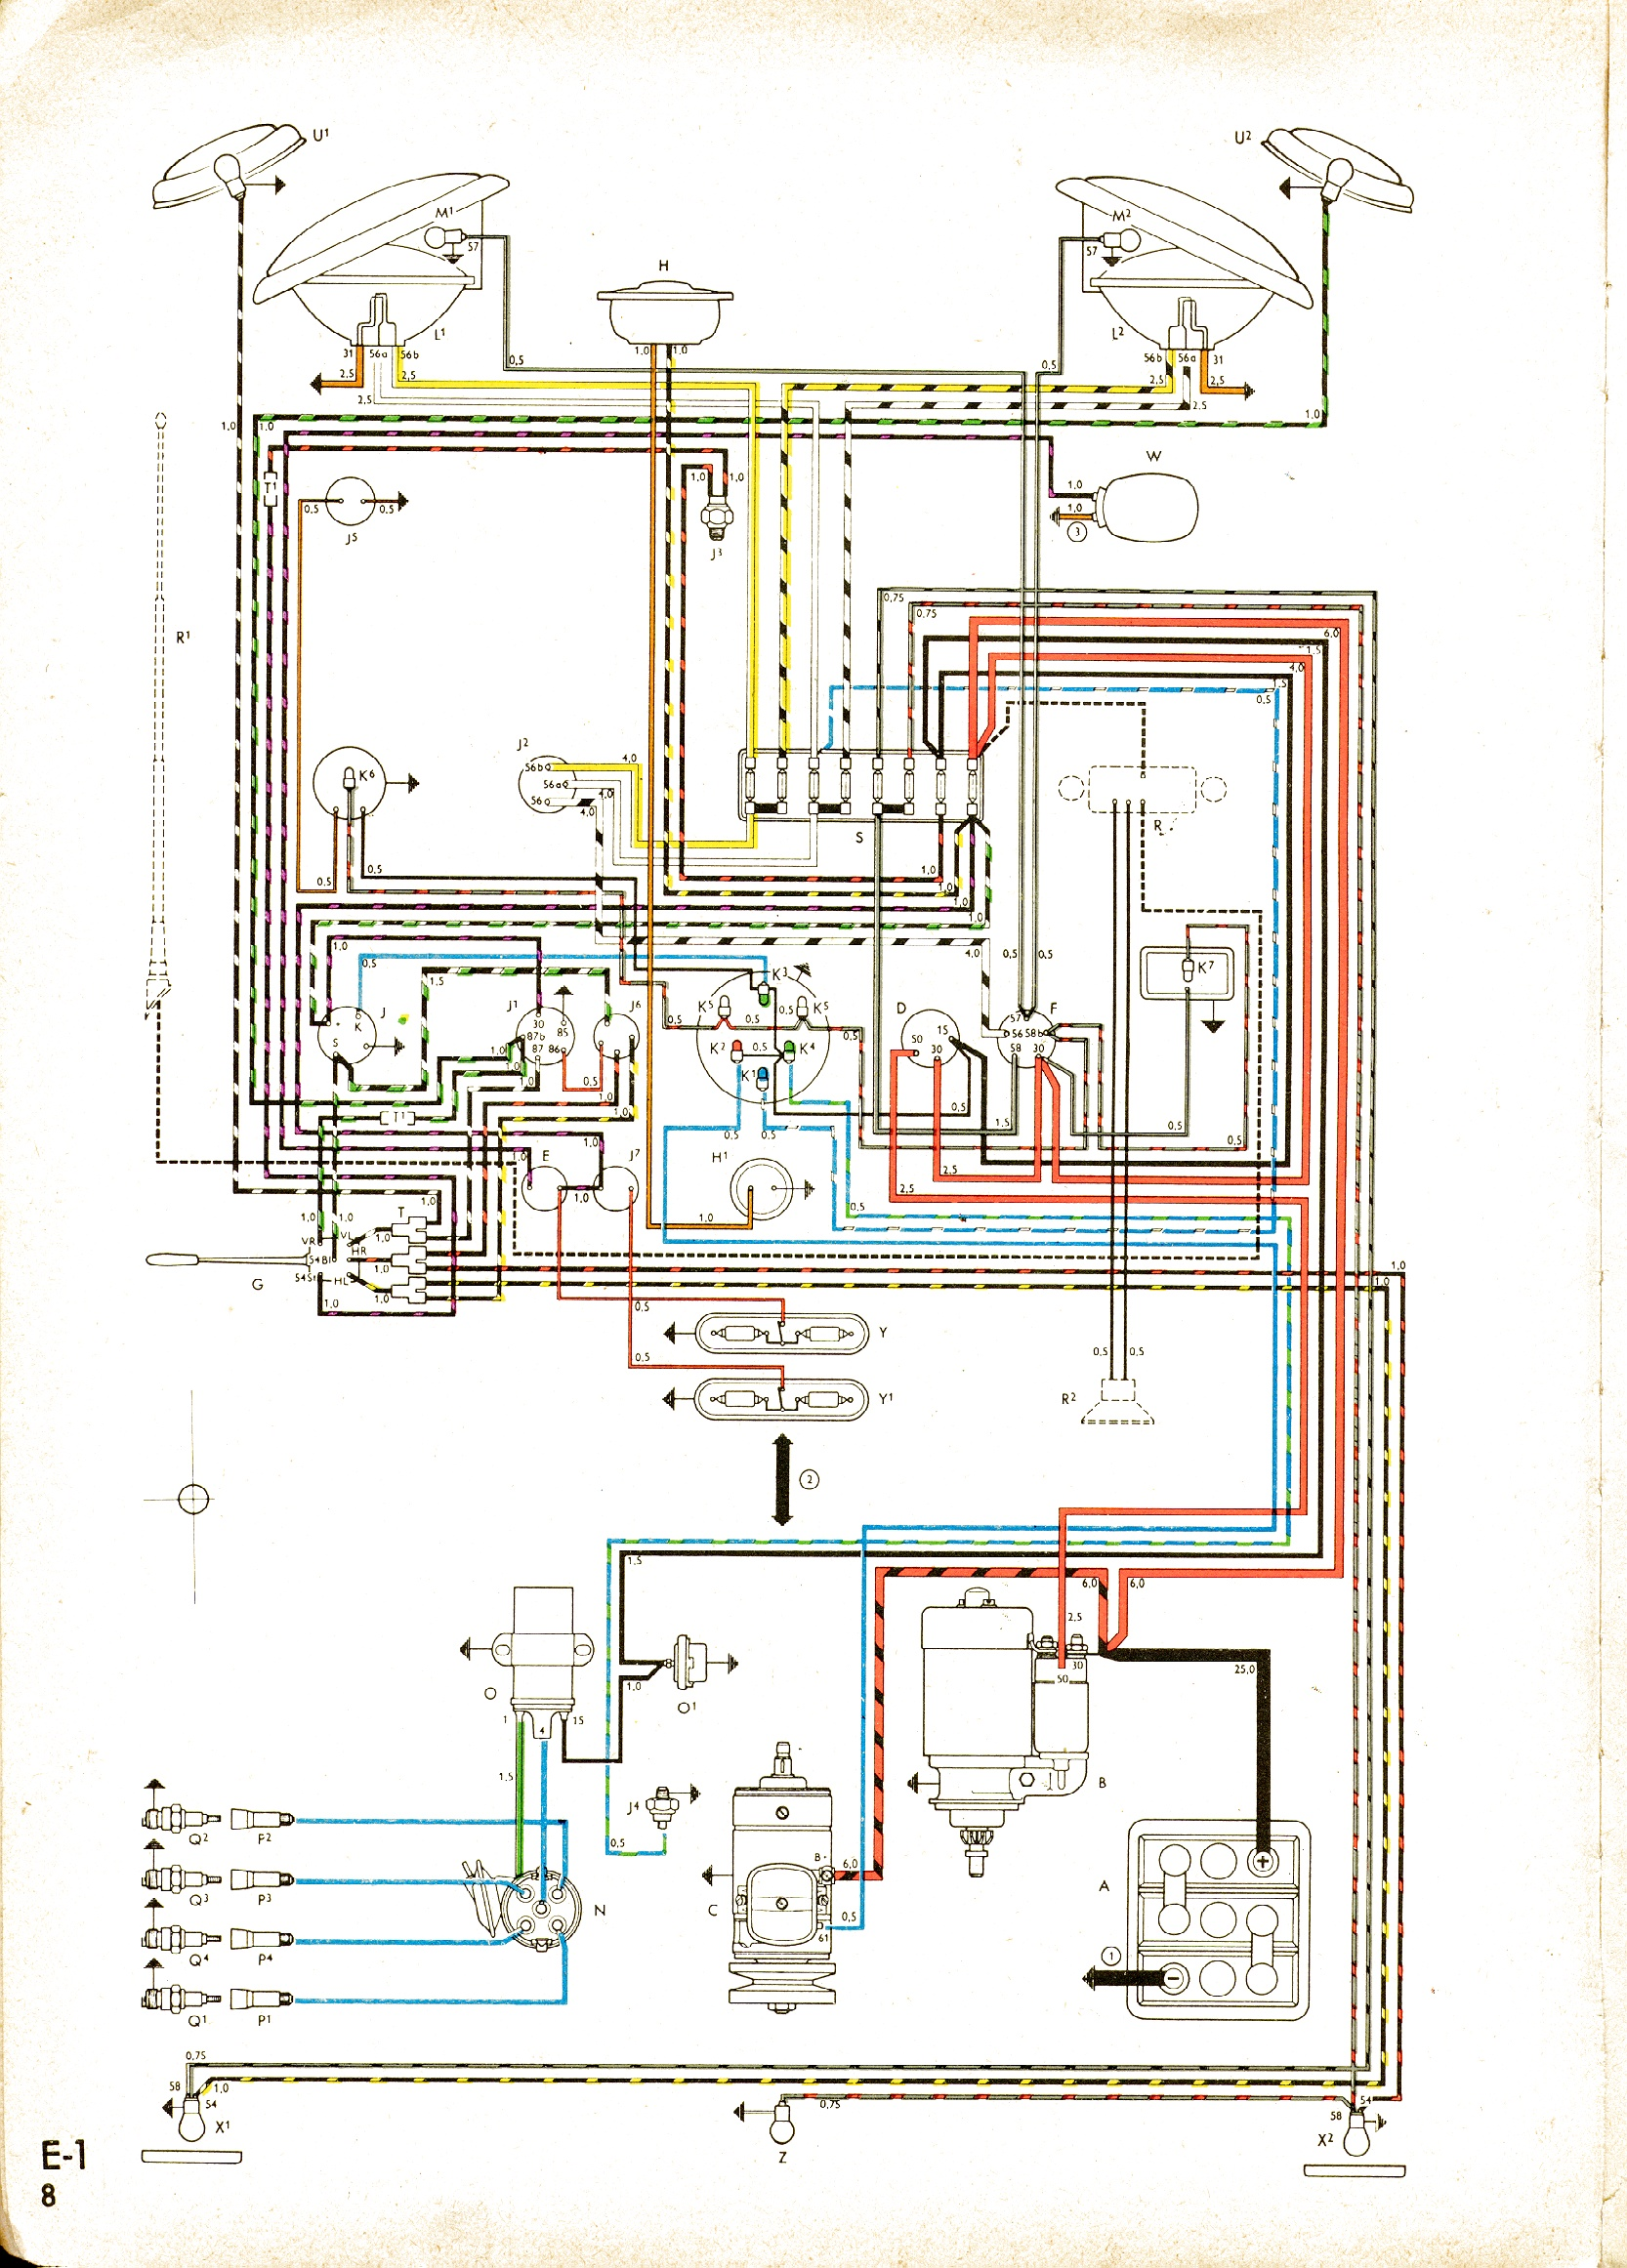 Check out the wiring diagram at http://vintagebus.com/wiring/bus-62-usa.jpg